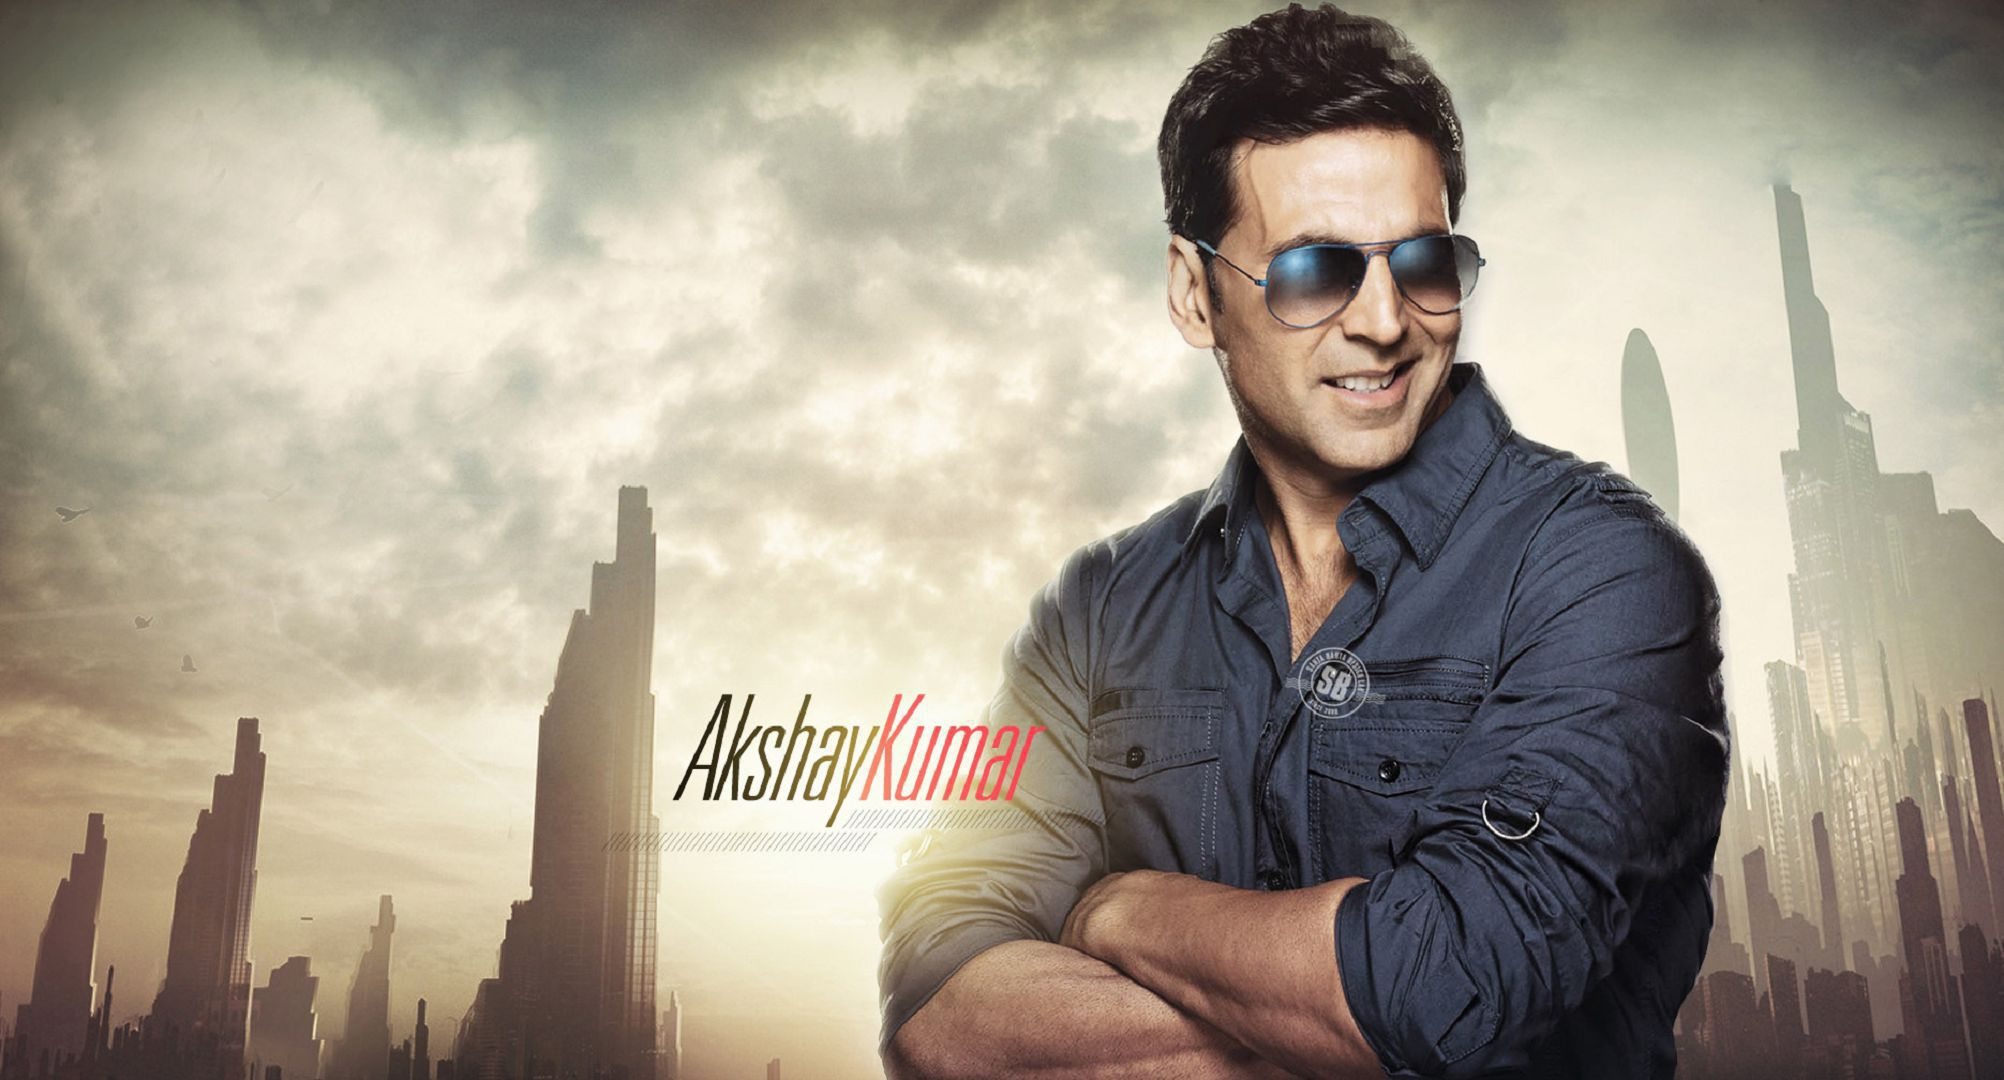 Akshay Kumar Wallpaper